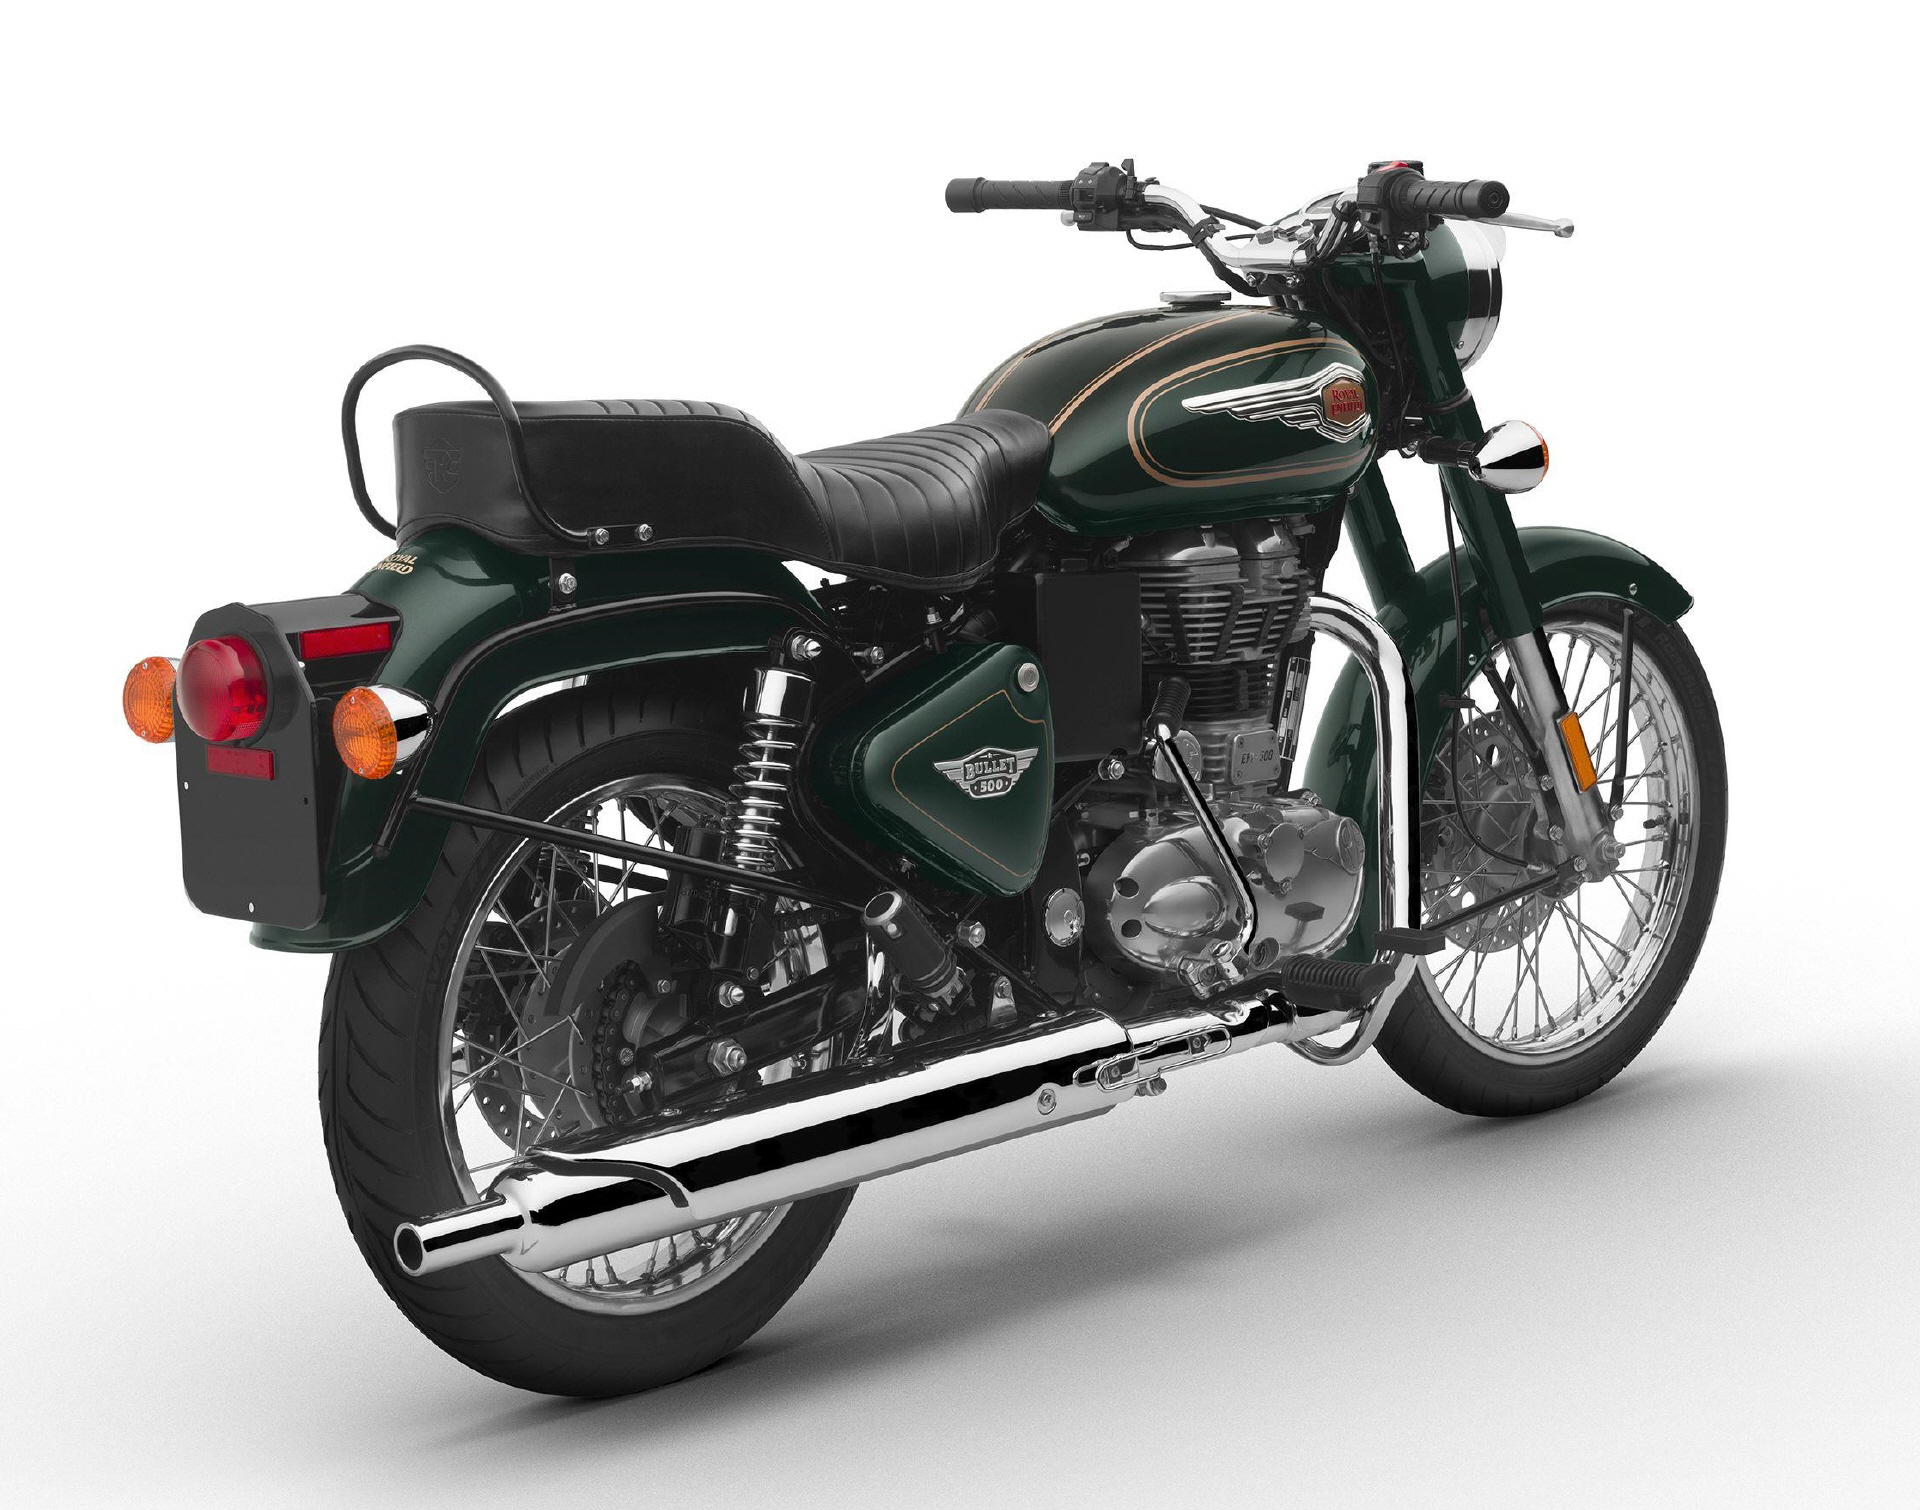 royalenfield_bullet_forestgreen_01jpg